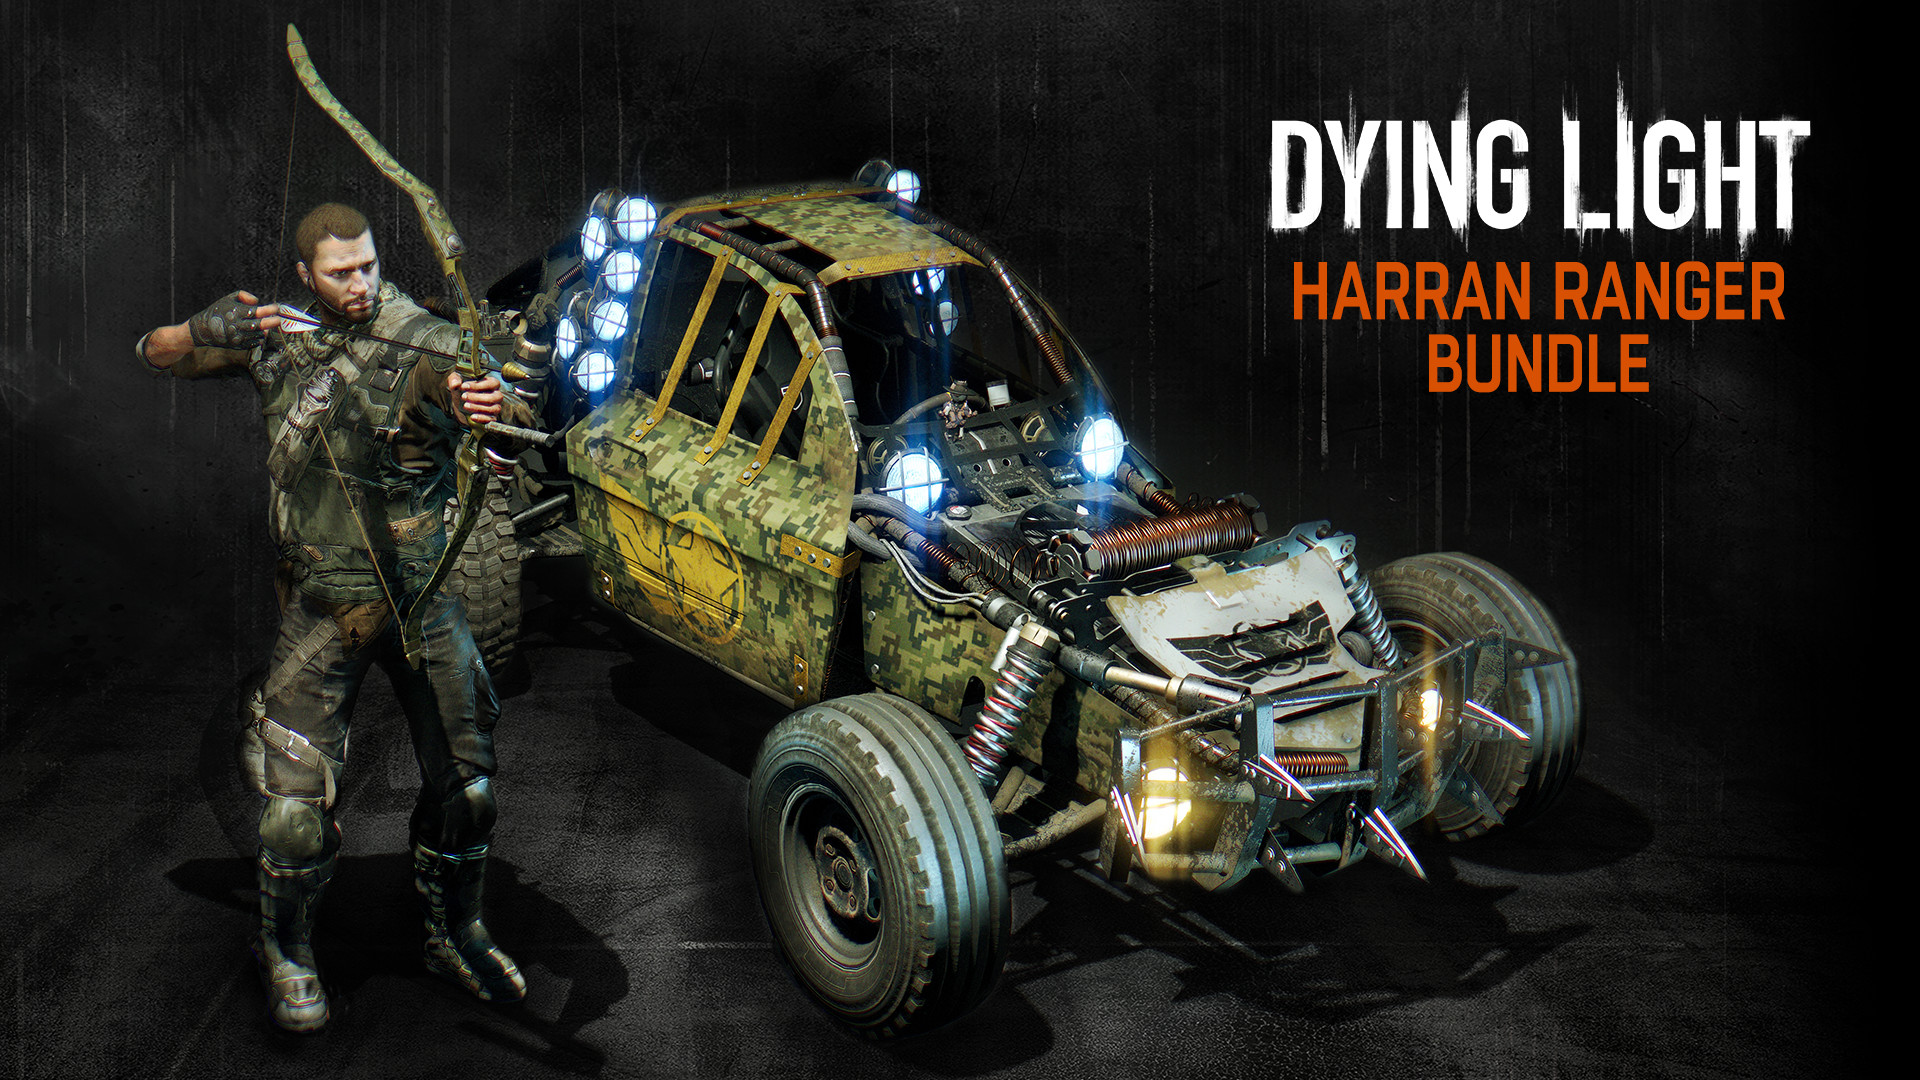 Dying Light - Harran Ranger Bundle (Steam key) @ RU